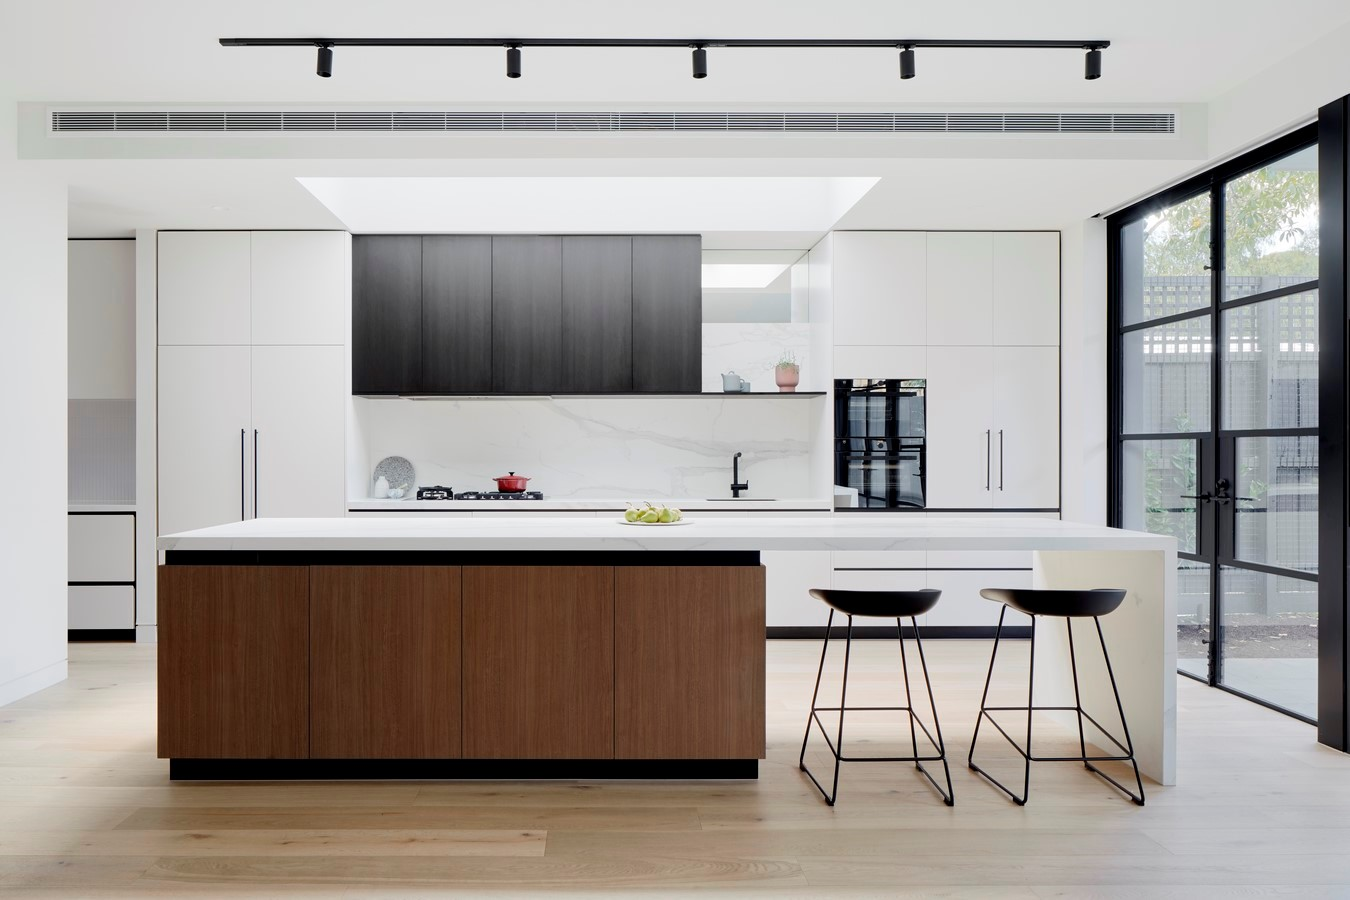 Roseberry Street House by Chan Architecture Pty Ltd - Sheet1